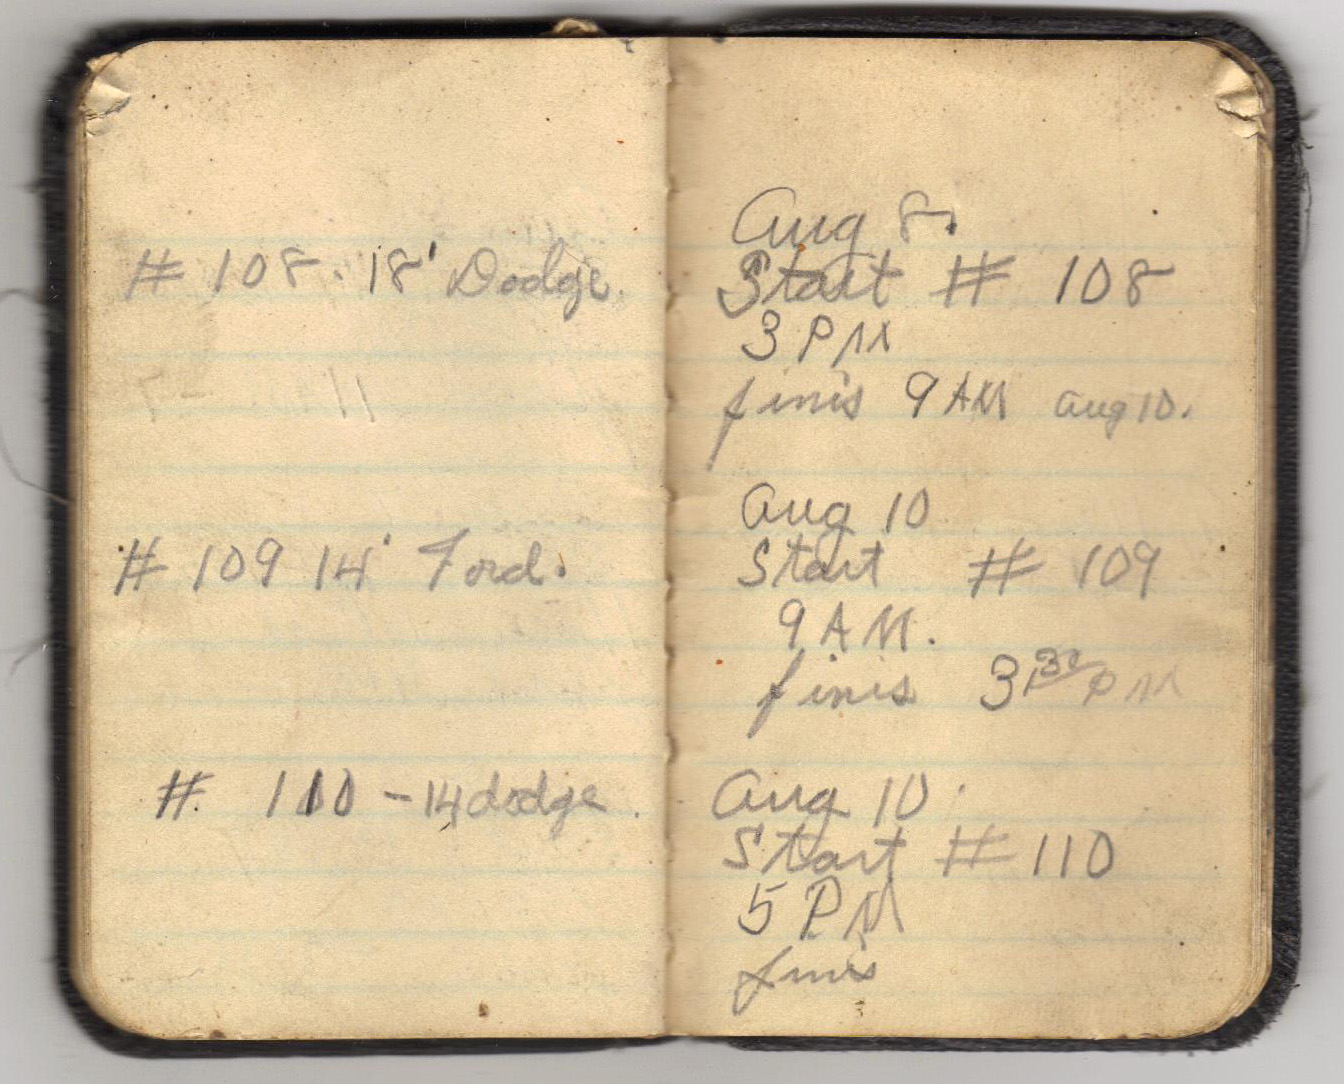 Pages from Ollie Eager's 1936 handwritten log book.